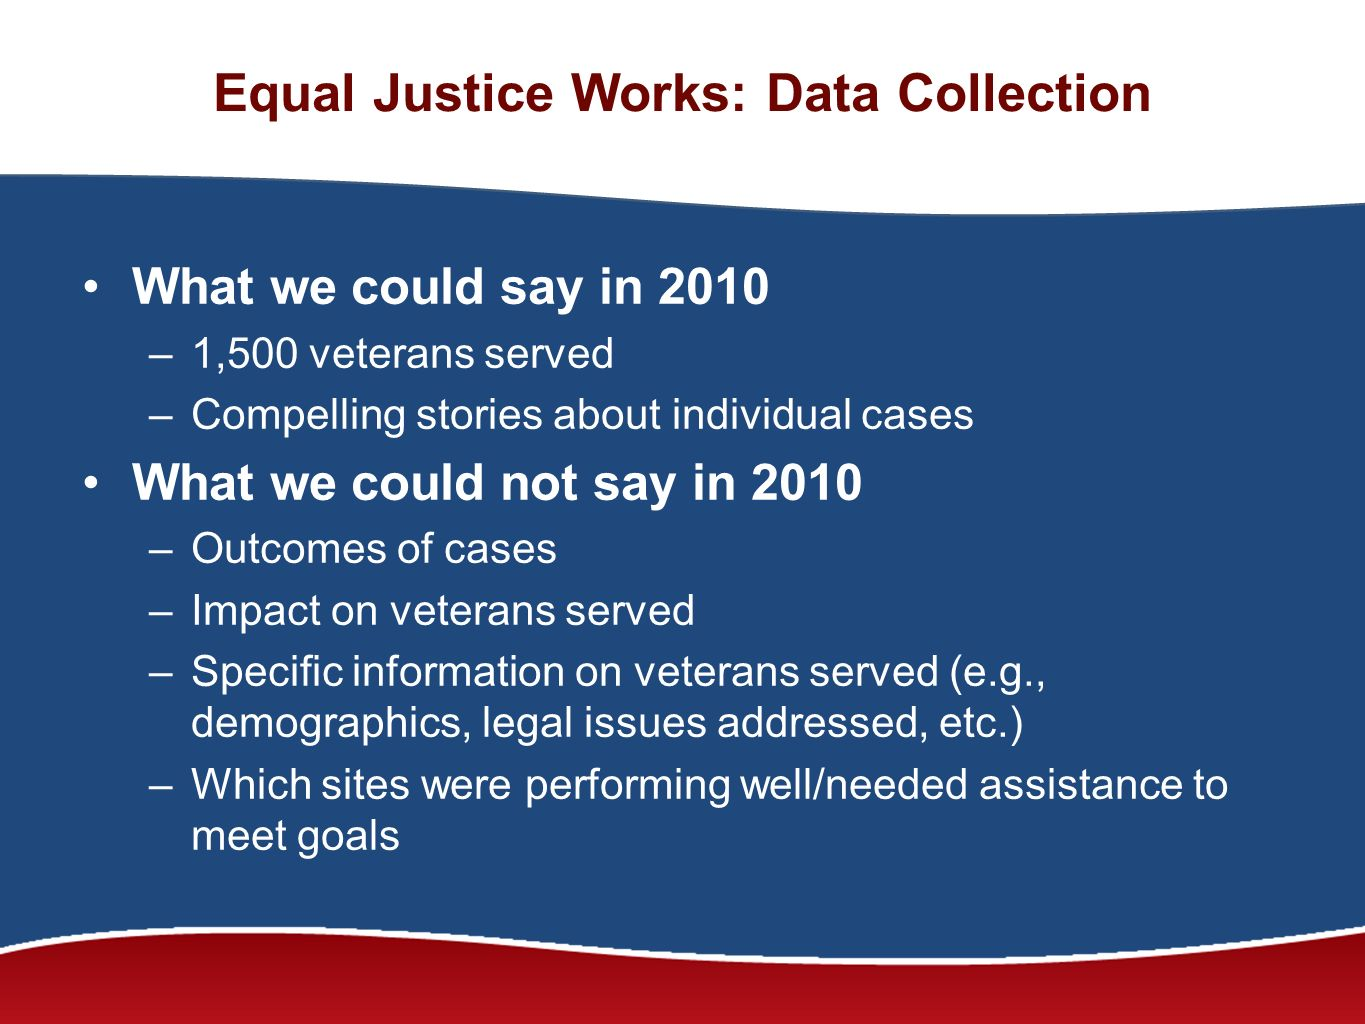 Equal Justice Works: Data Collection What we could say in 2010 –1,500 veterans served –Compelling stories about individual cases What we could not say in 2010 –Outcomes of cases –Impact on veterans served –Specific information on veterans served (e.g., demographics, legal issues addressed, etc.) –Which sites were performing well/needed assistance to meet goals